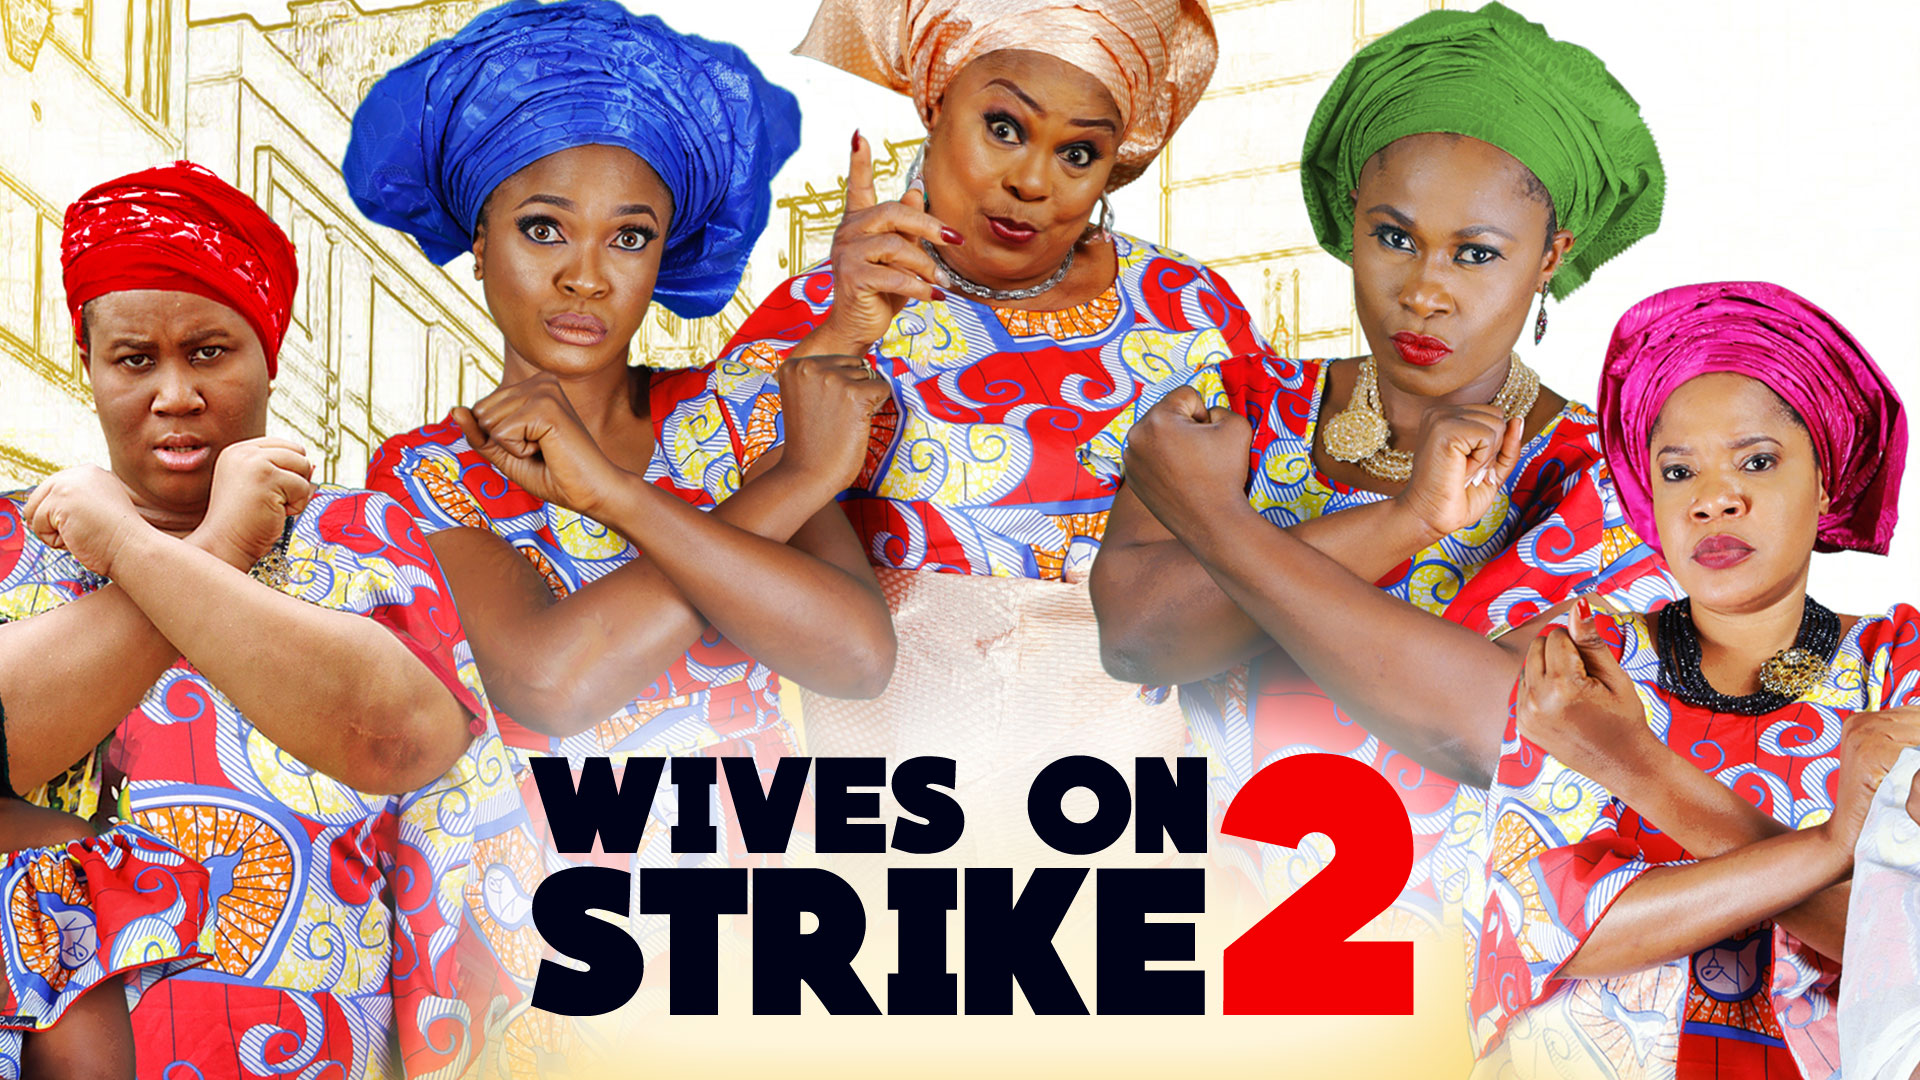 Wives on Strike 2: The Revolution